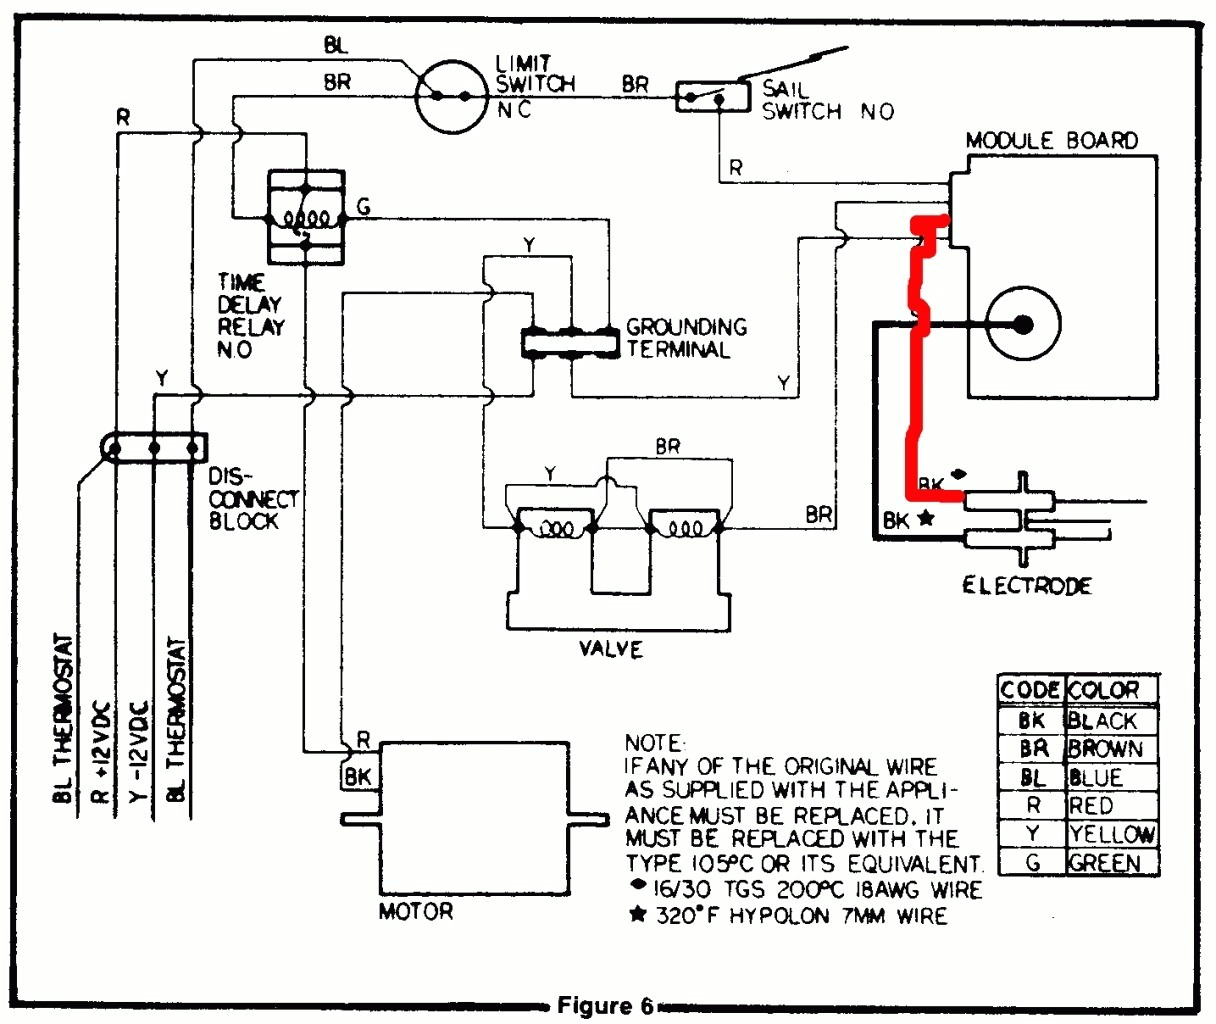 atwood water heater wiring diagram travel trailer furnace fresh best od rv park 10t on suburban